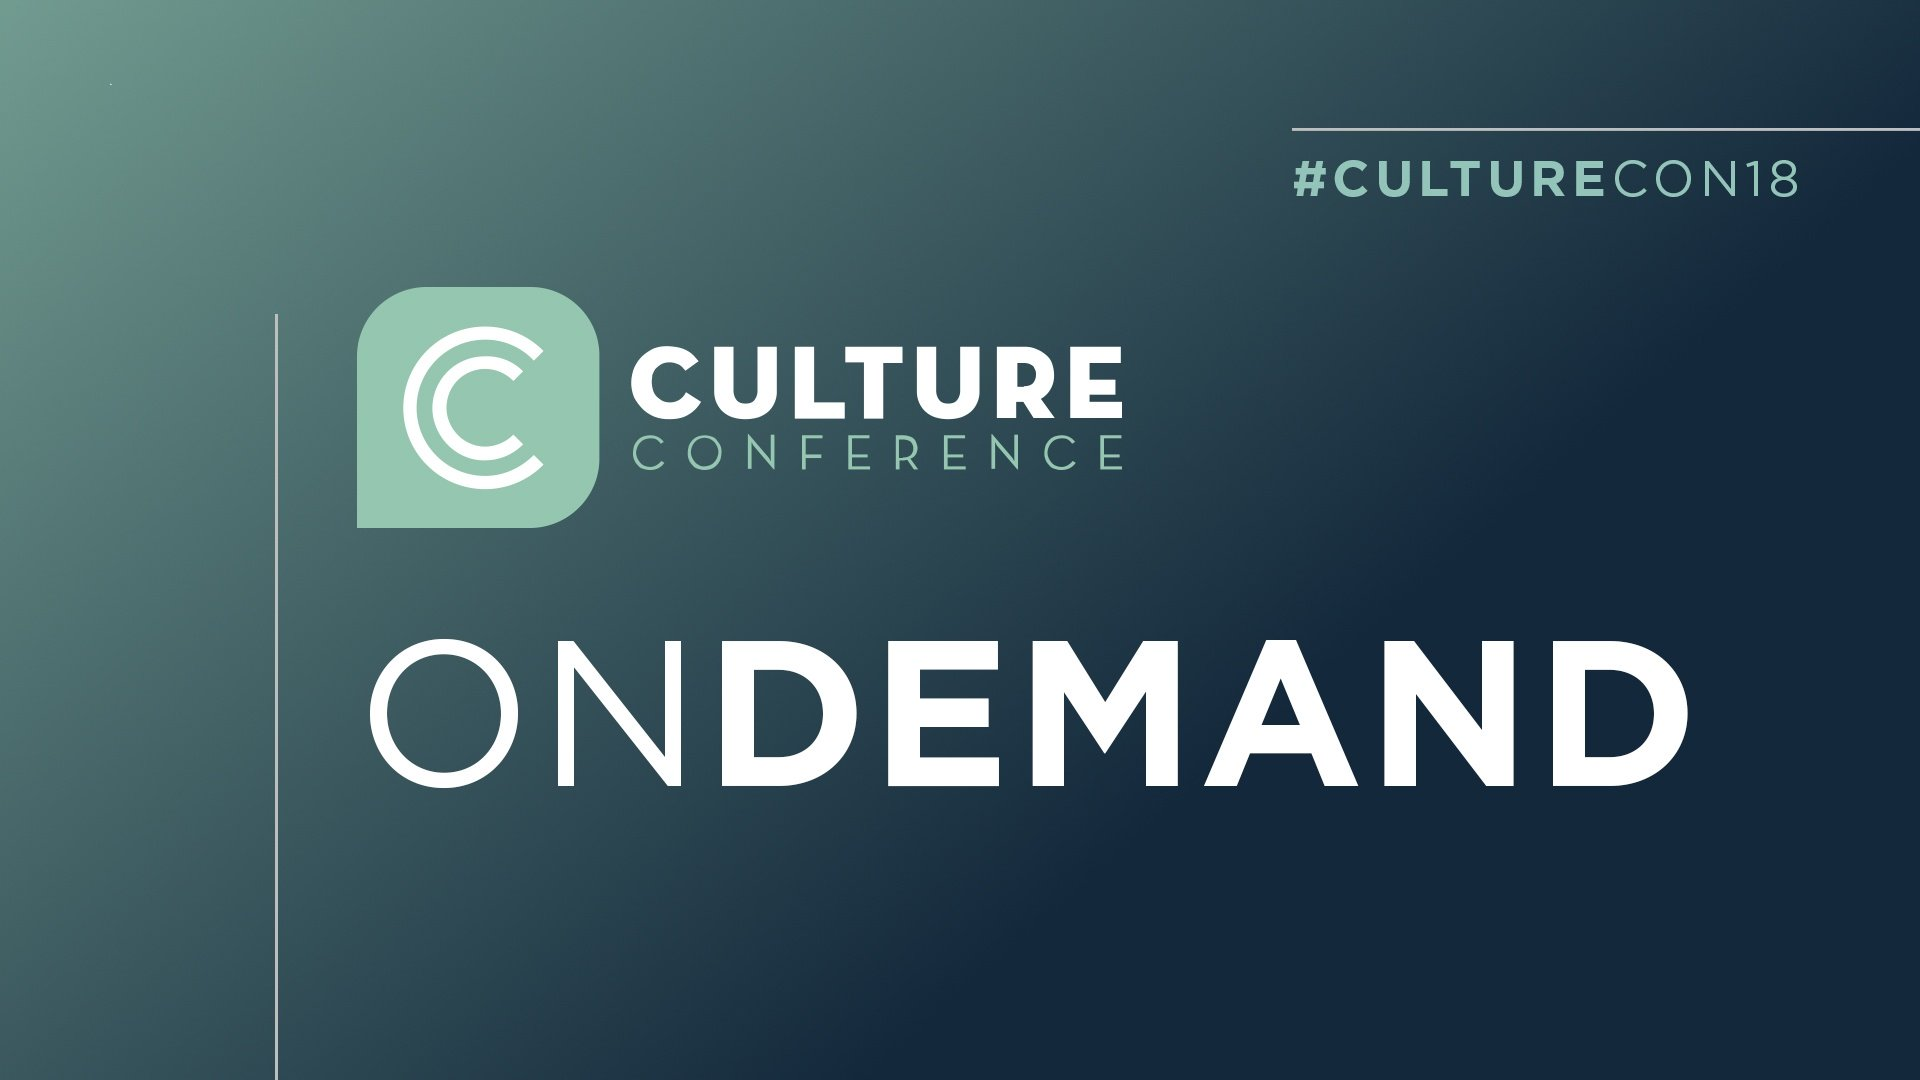 2018 Culture Conference now available ON DEMAND.